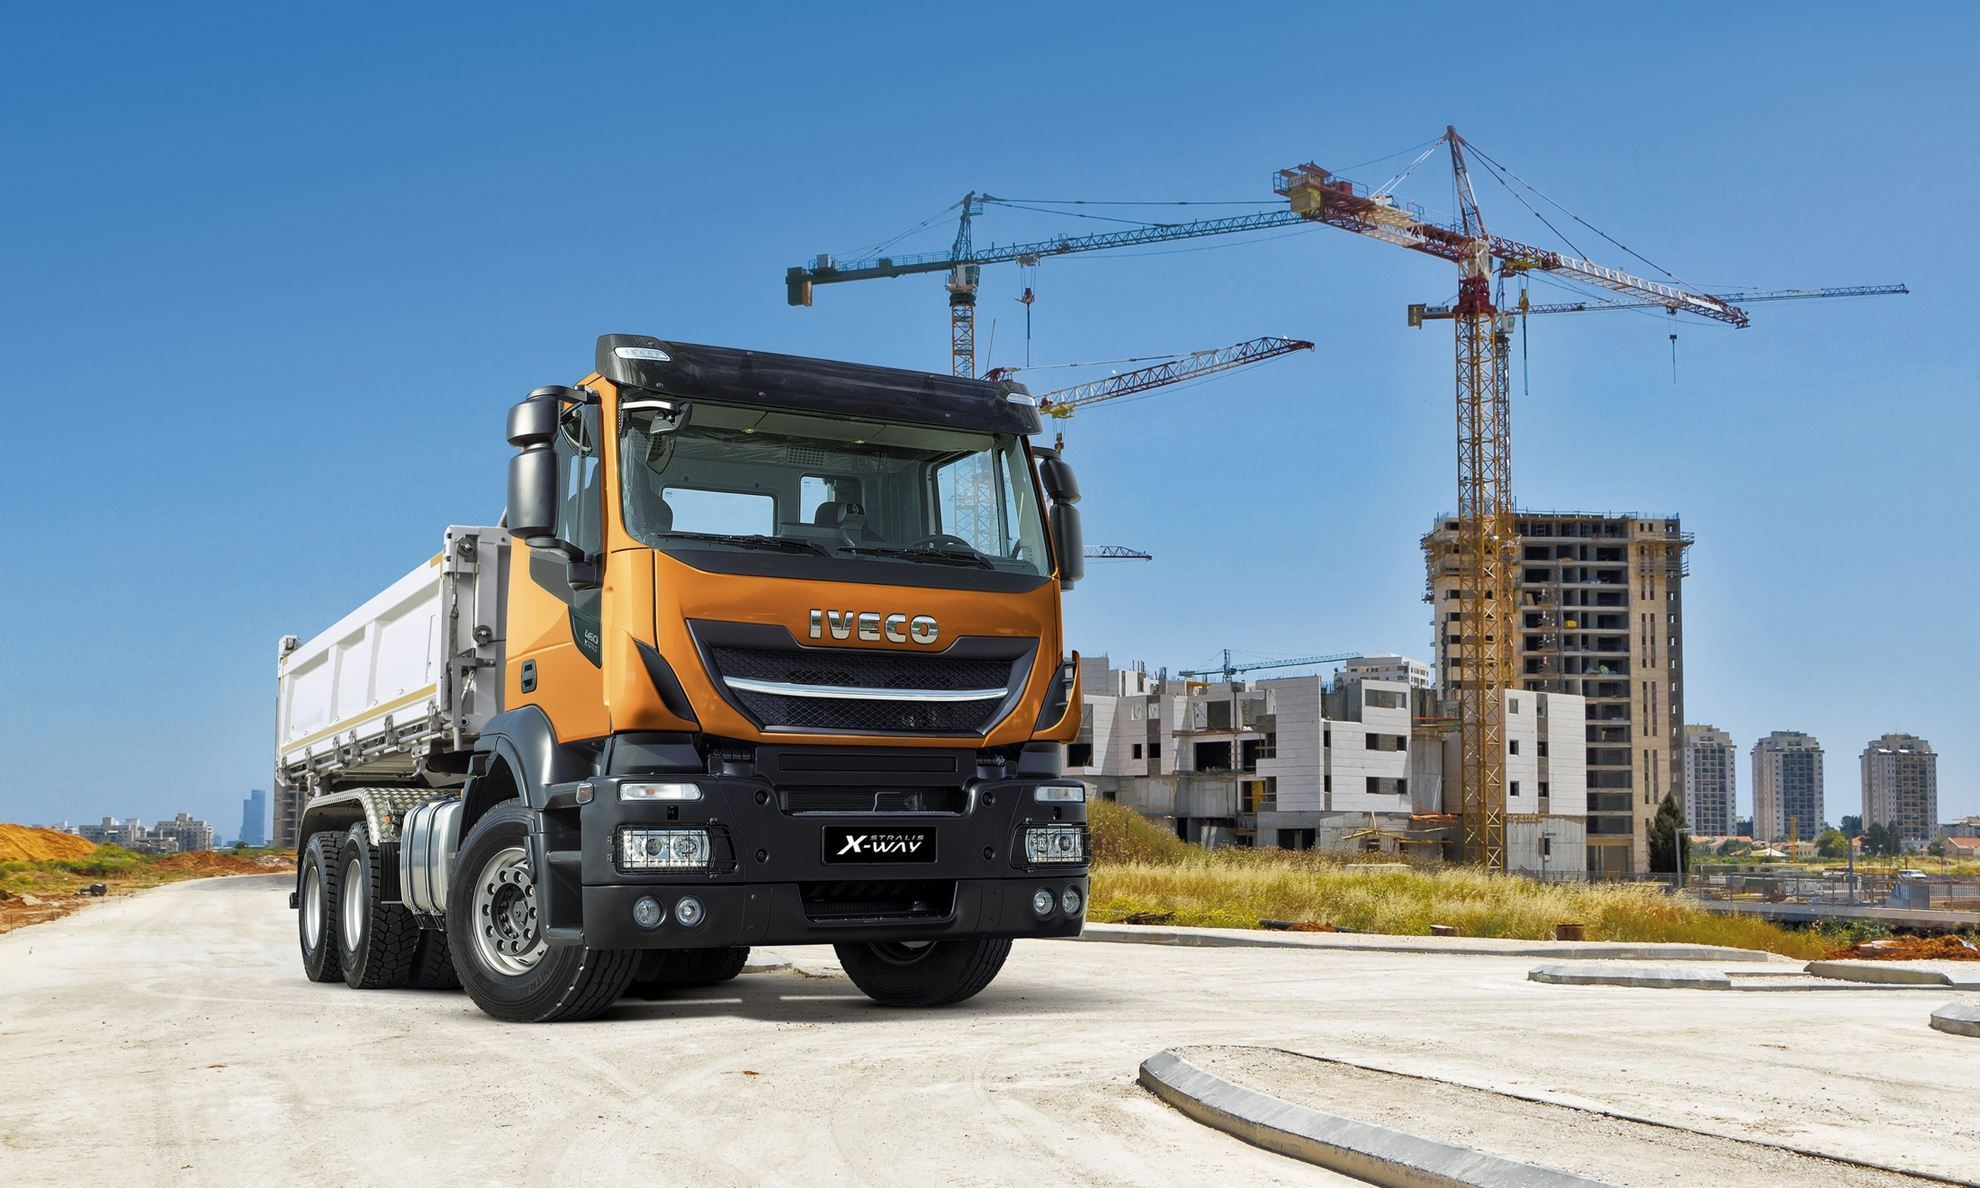 camion off-road e on-road